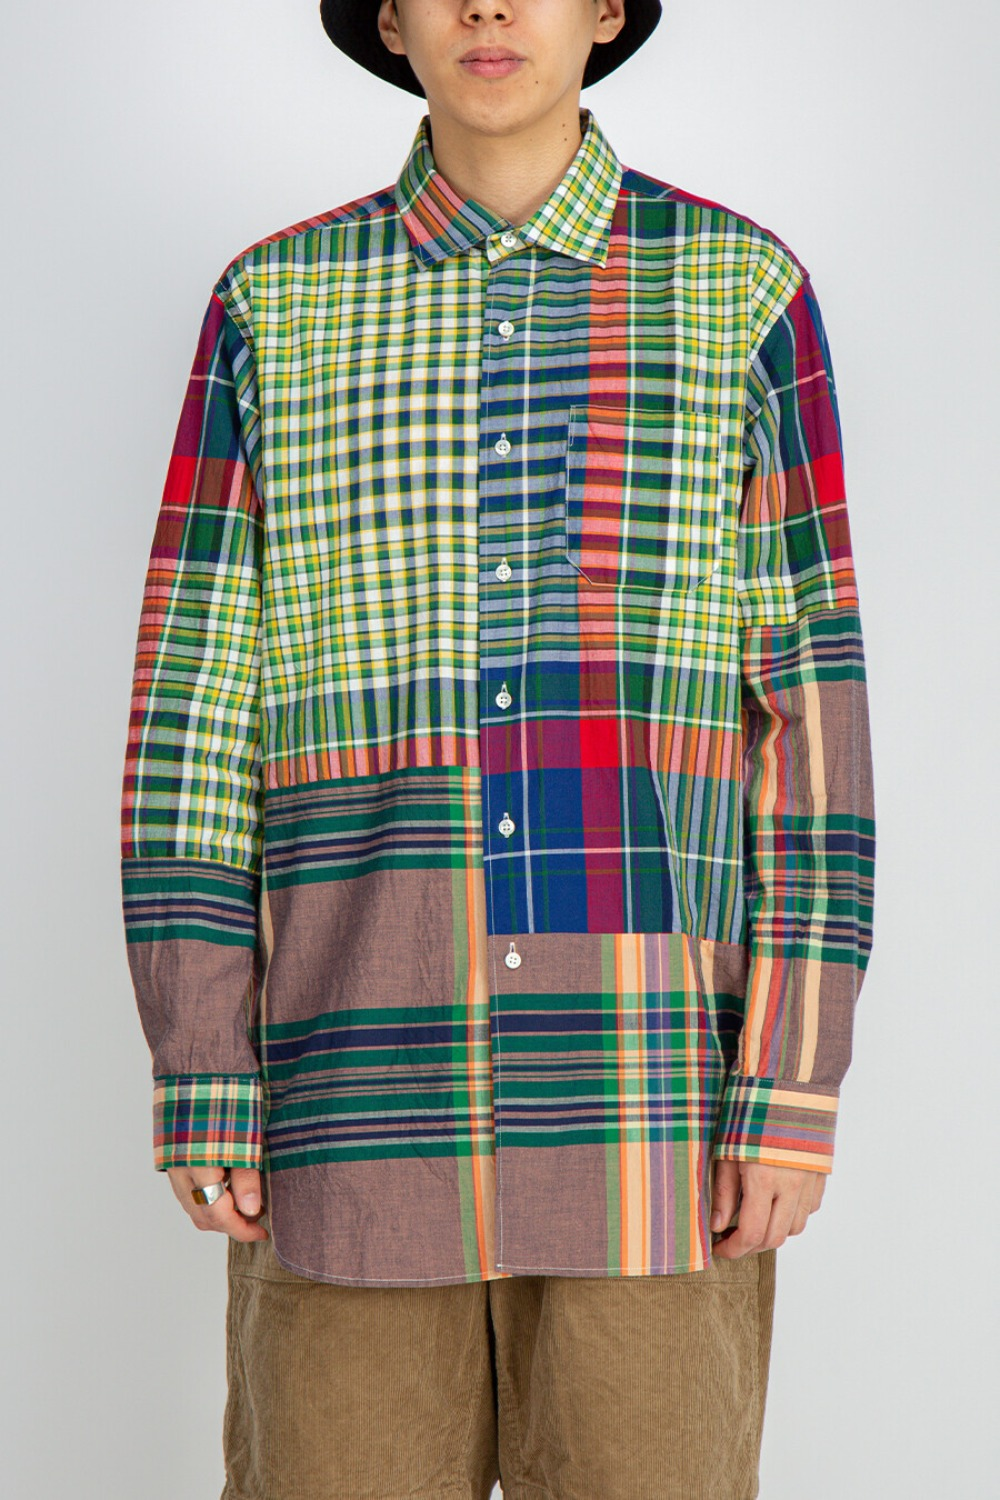 SPREAD COLLAR SHIRT BIG MADRAS PLAID RED BLUE GREEN